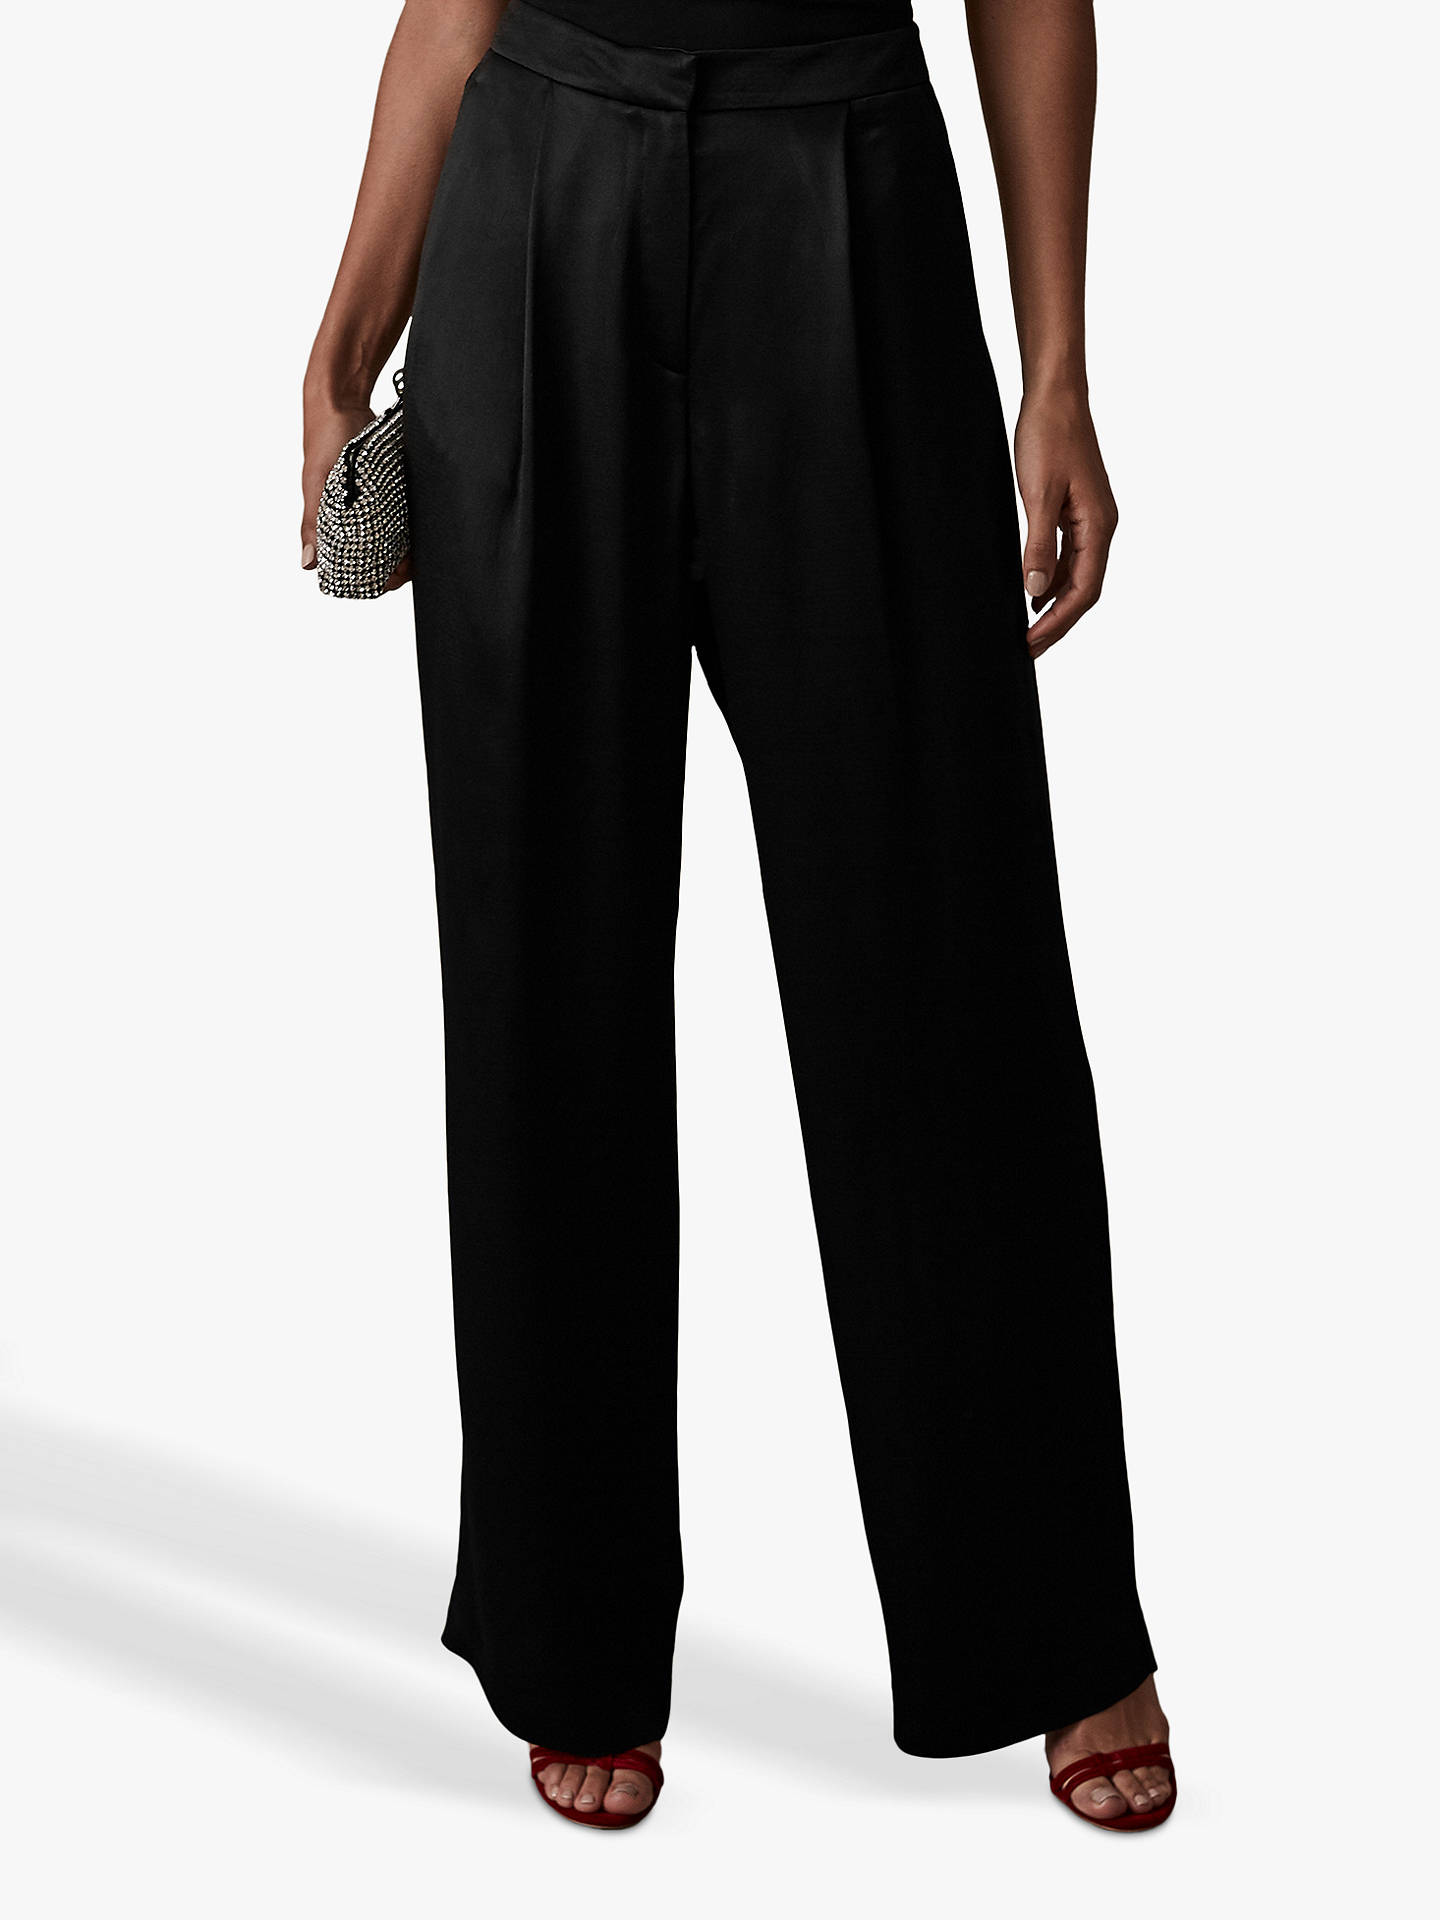 BuyReiss Milan Tarianna Wide Leg Trousers, Black, 10 Online at johnlewis.com